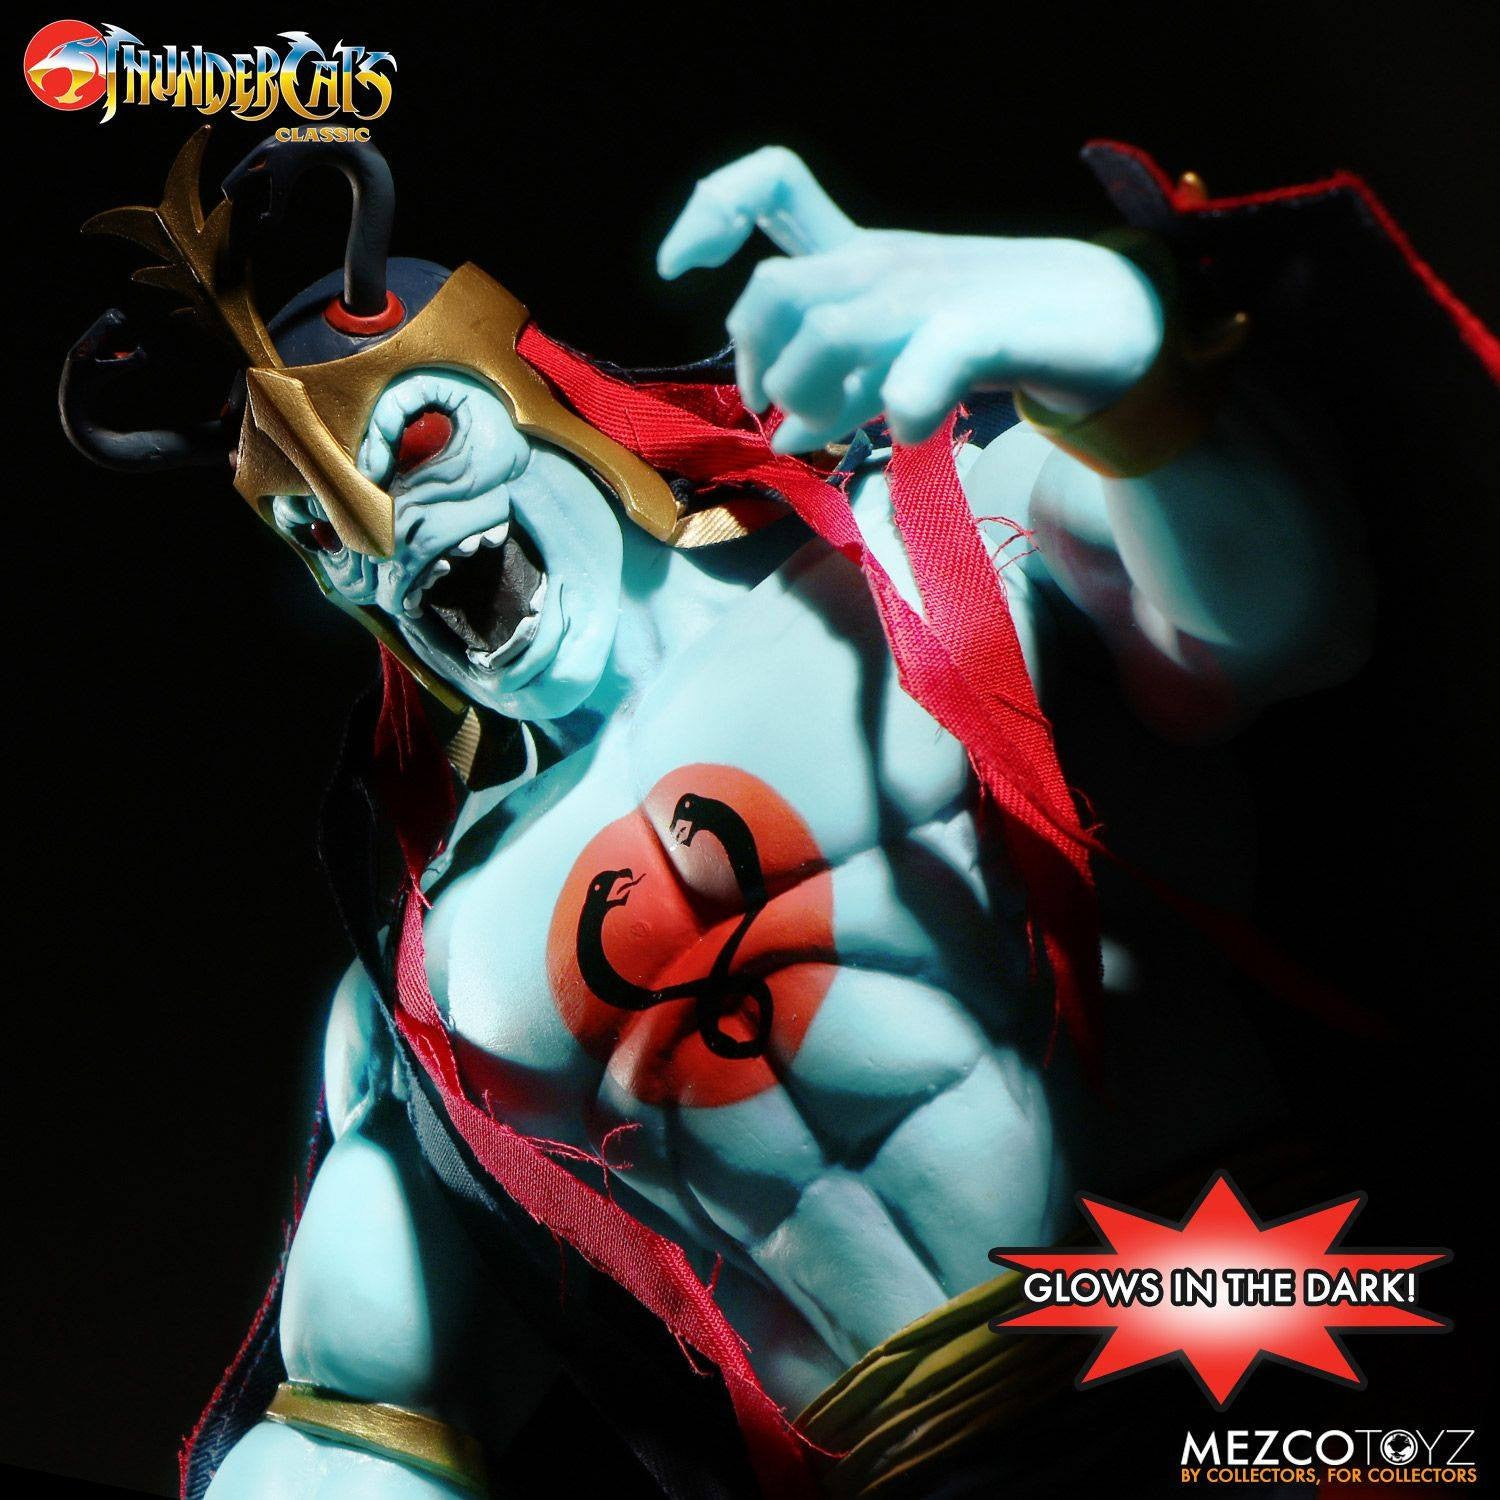 Mezco - Mega Scale - Thundercats - Mumm-Ra (Glow in the Dark Edition) - Marvelous Toys - 4